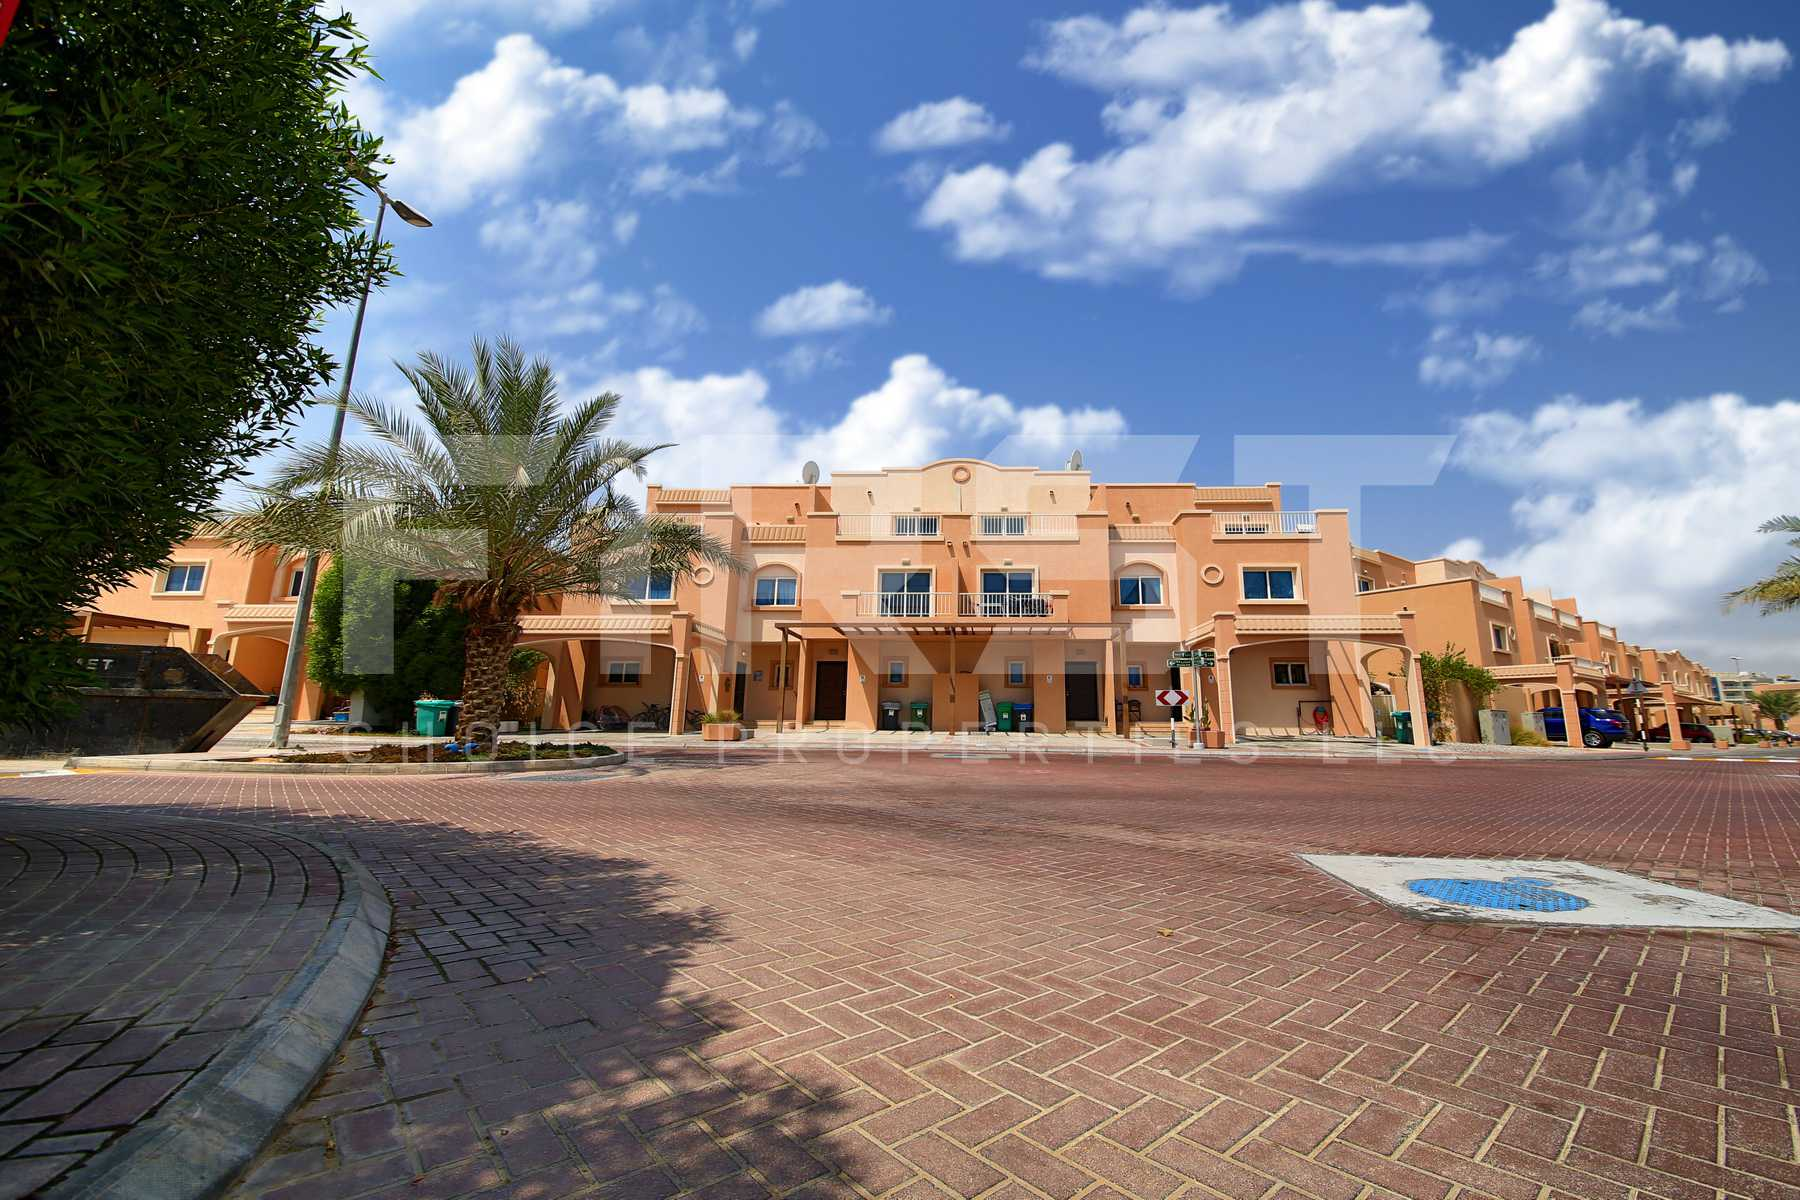 3. External Photo of Meditteranean Village Al Reef Villas Al Reef Abu Dhabi UAE (11).jpg